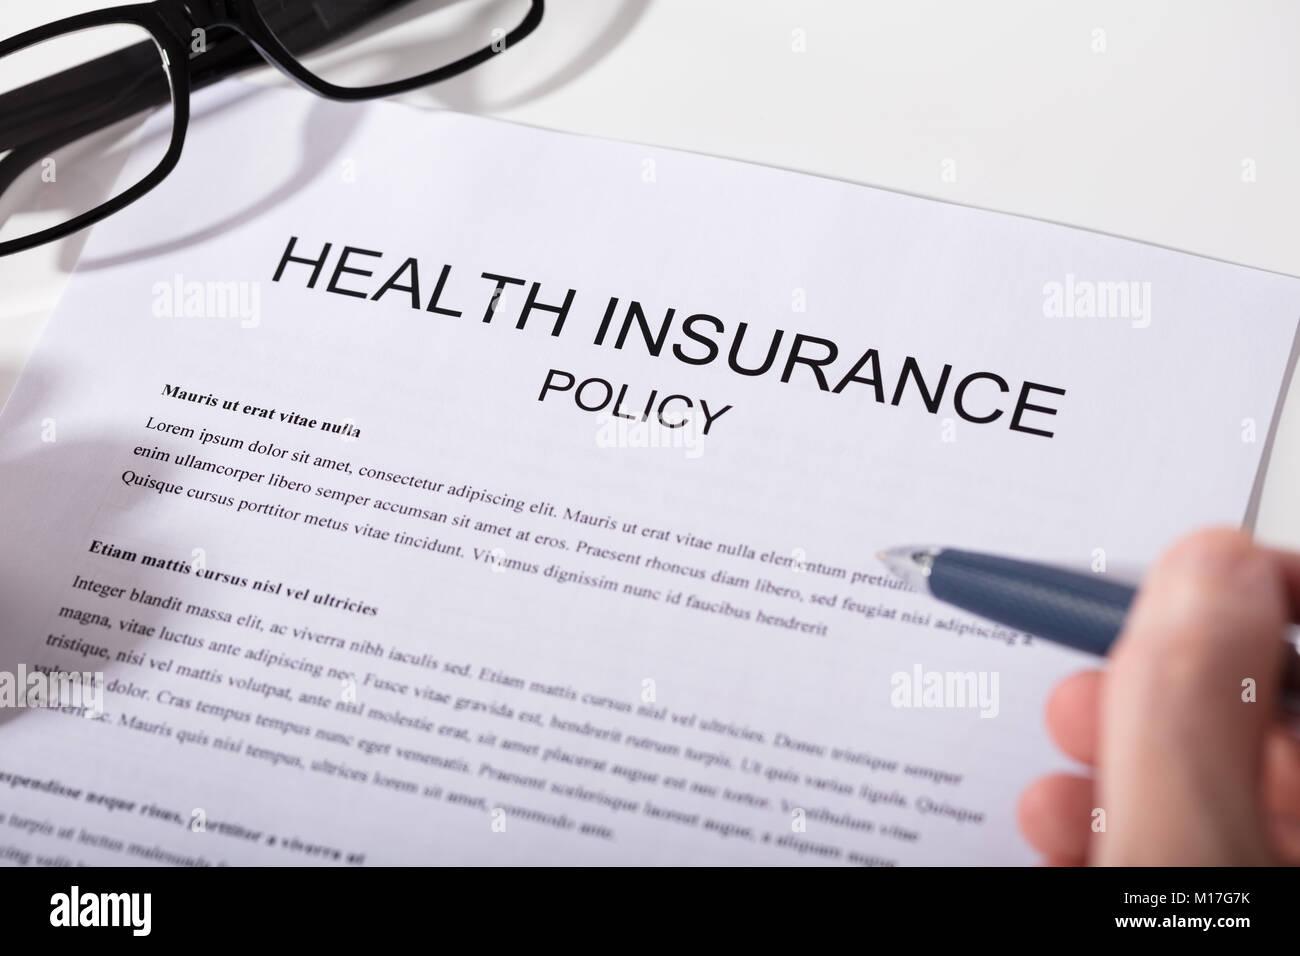 Close-up Of A Person's Hand Holding Pen Over Health Insurance Policy Form - Stock Image